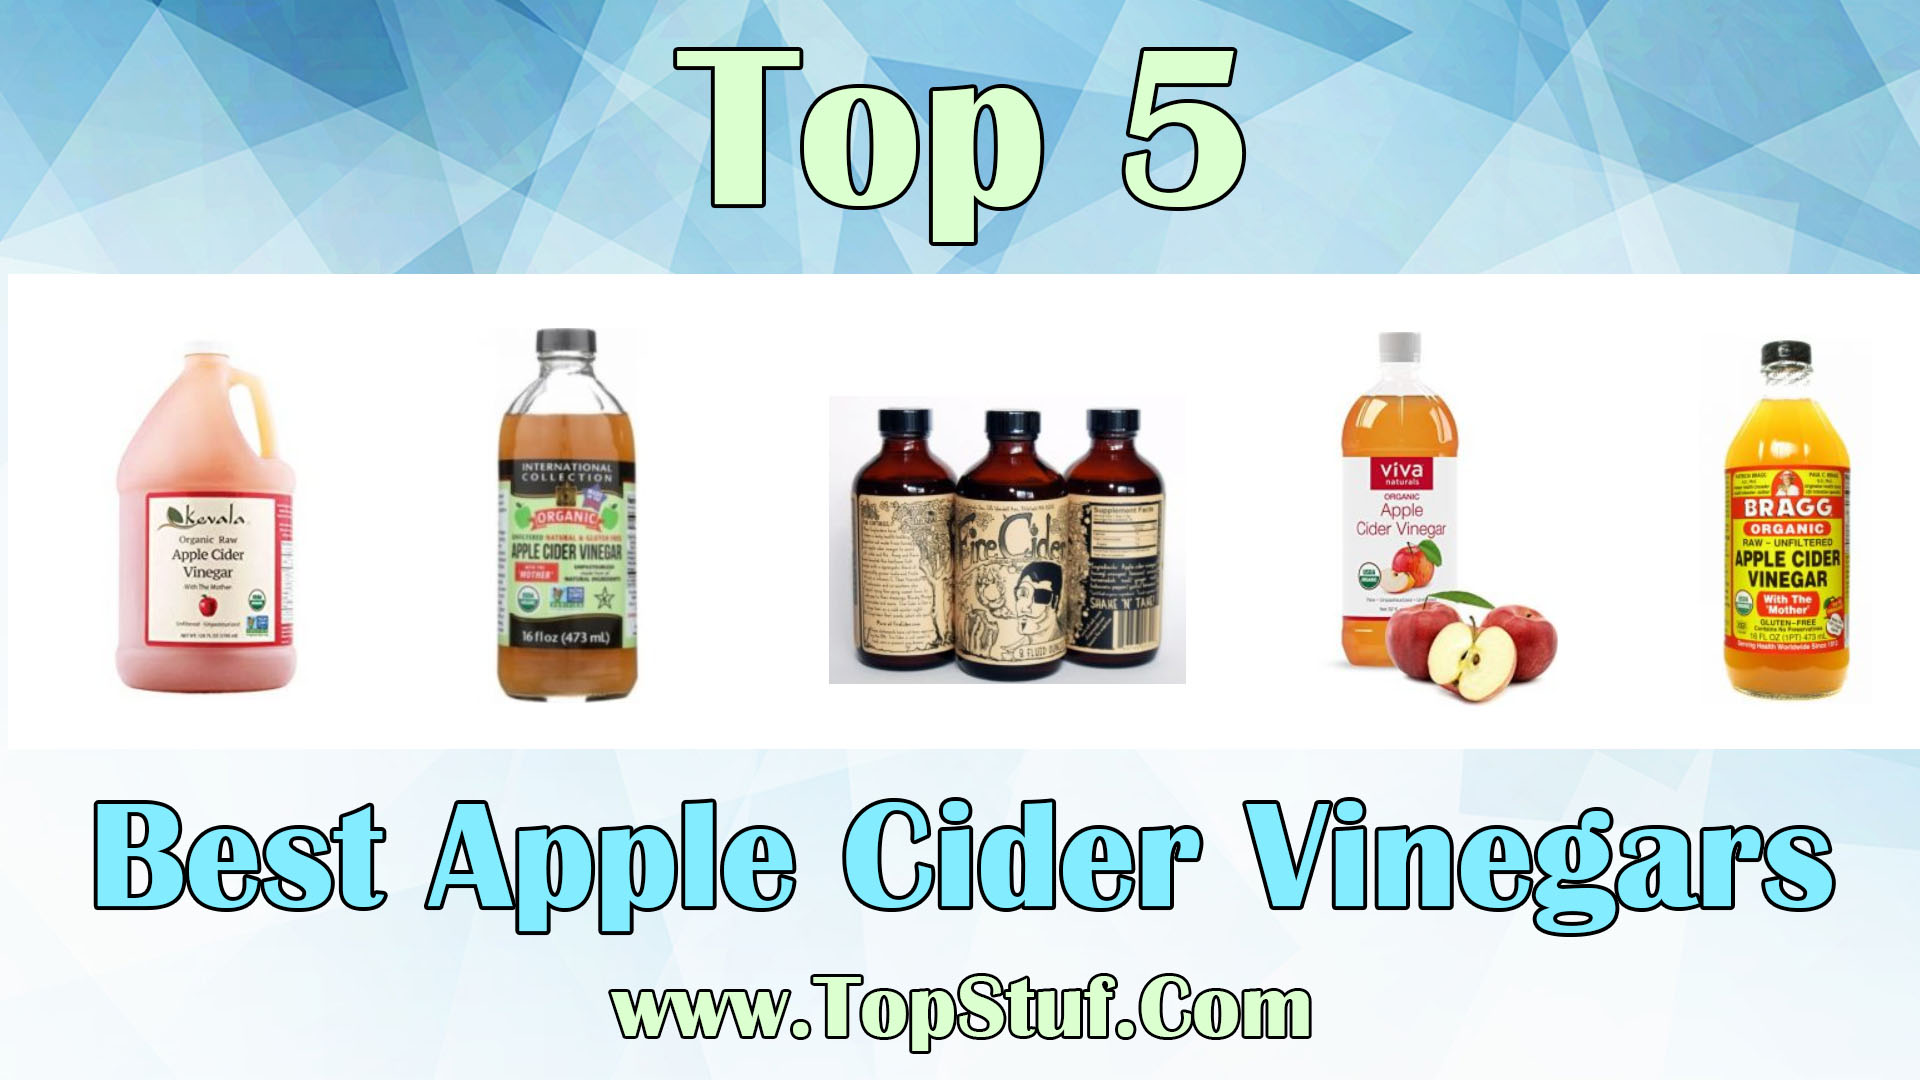 Best Apple Cider Vinegars